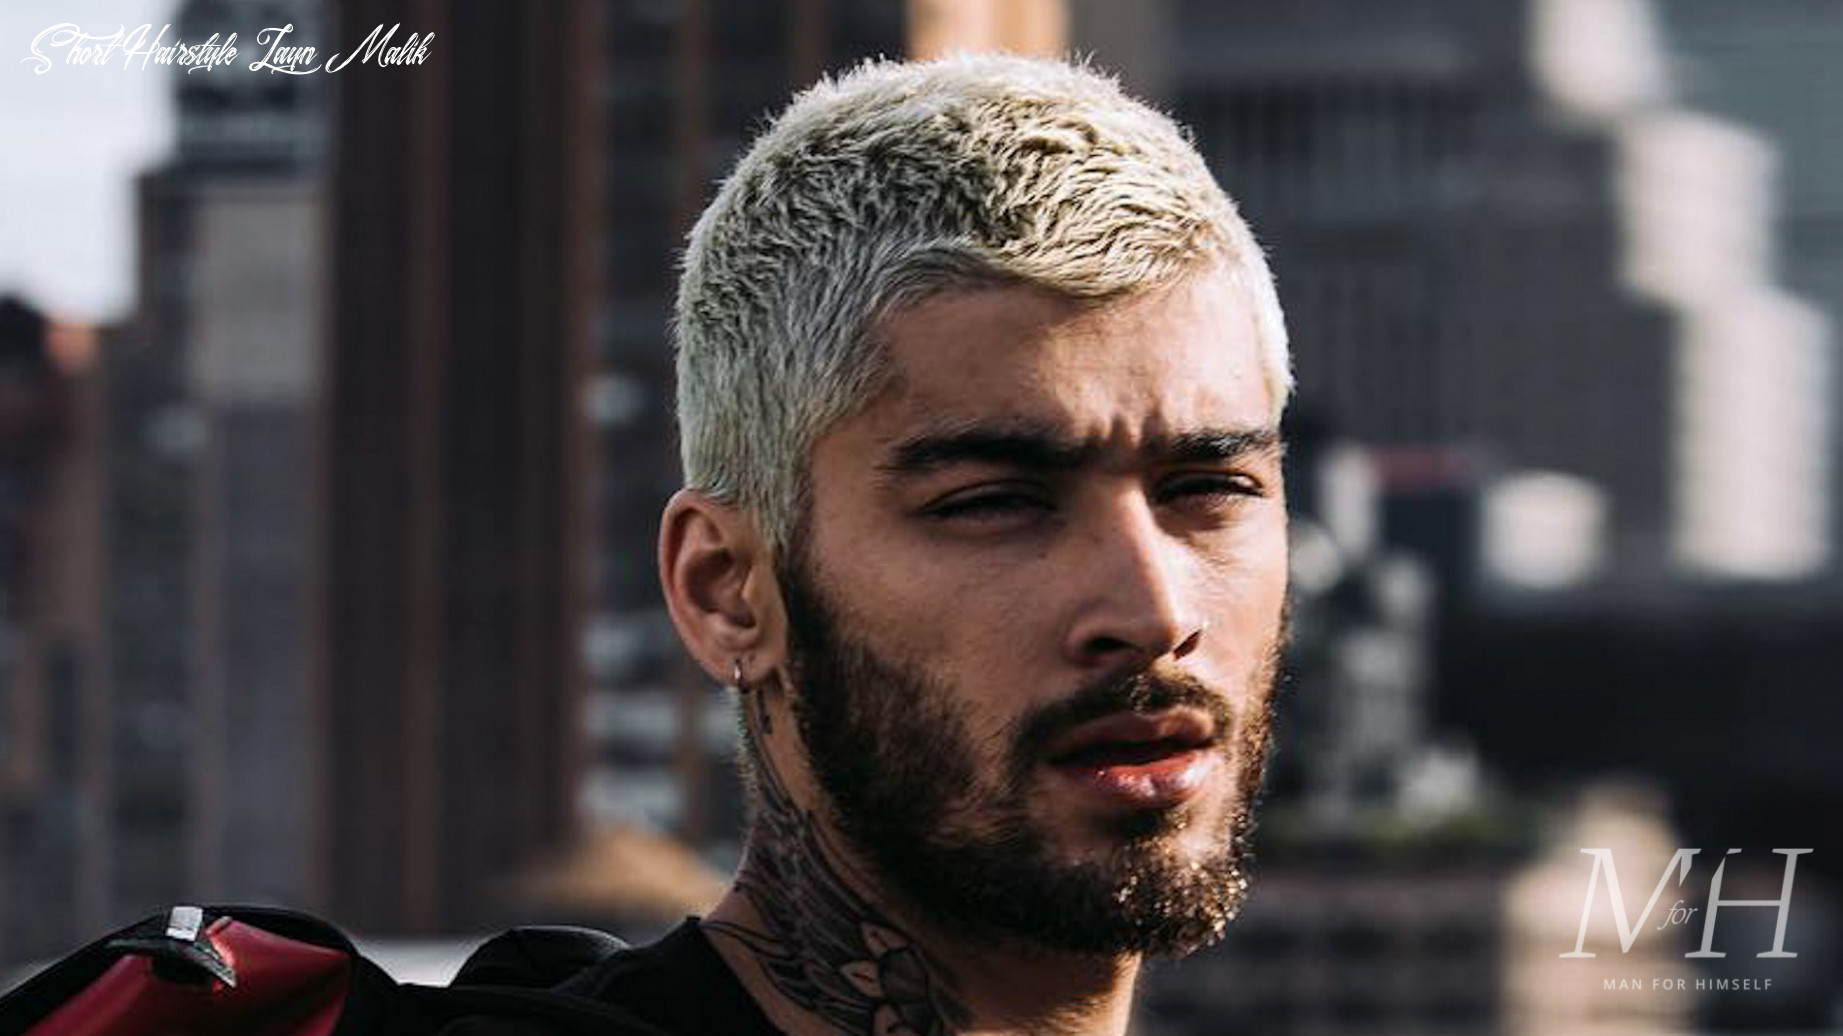 8 buzz cut hairstyles to try in 8 | man for himself short hairstyle zayn malik